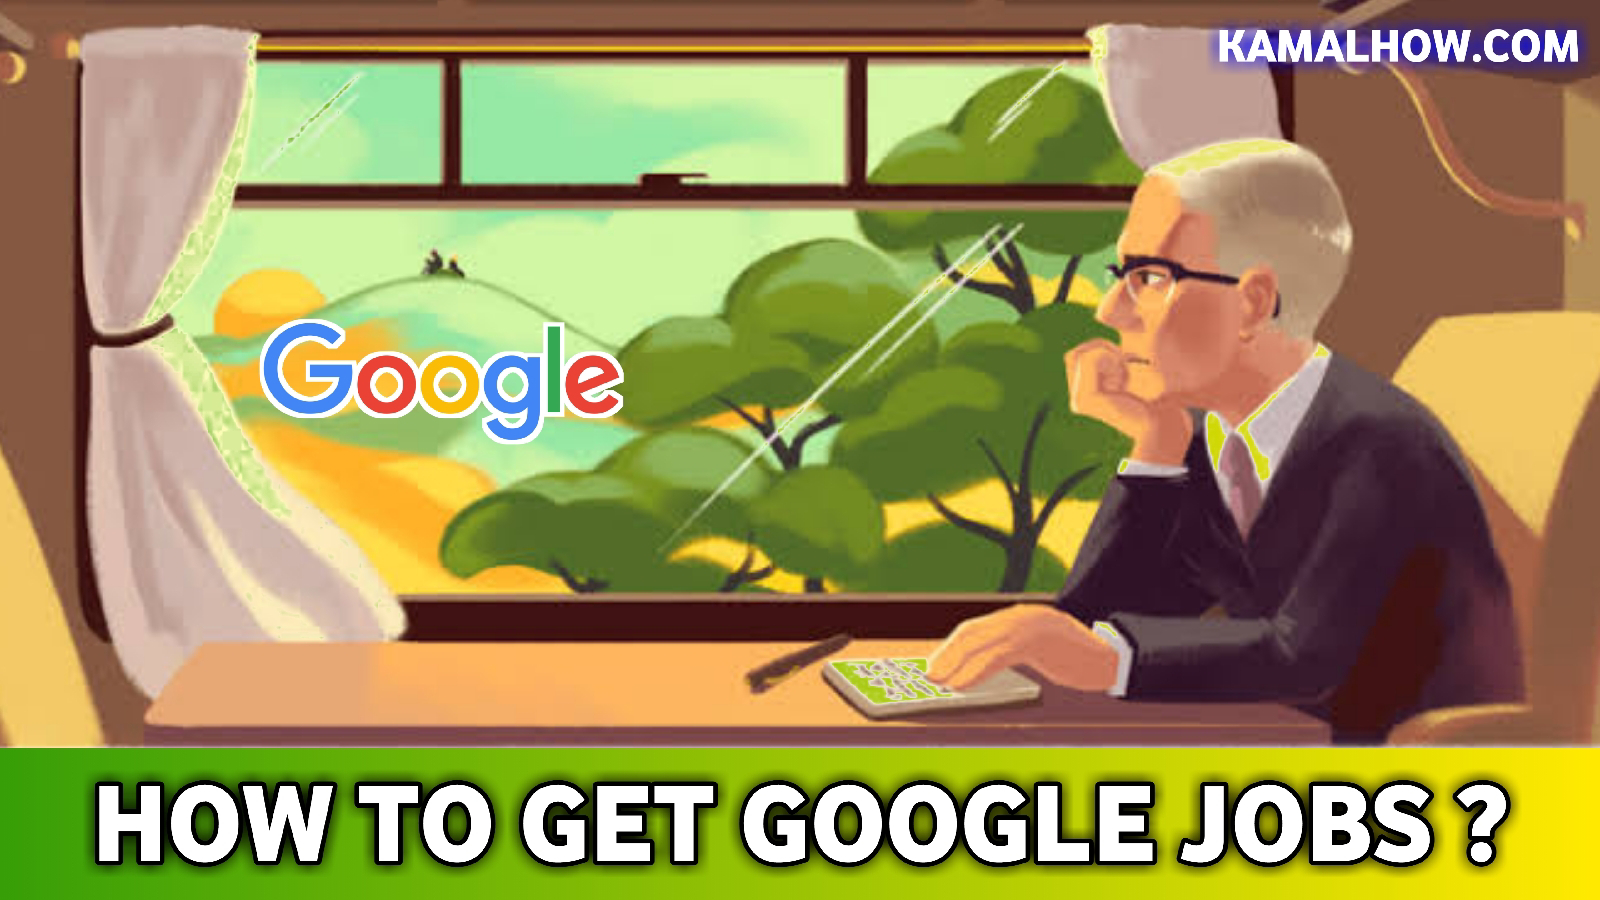 गूगल में जॉब कैसे मिलती है, google job kaise paye, google job kaise kare, google jobs in delhi, google jobs in gurgaon, how to get google jobs in india, how to get google jobs in hyderabad, google jobs vacancy in delhi, google uk jobs vacancies, google nigeria jobs vacancies, google employees slary in india, google employee benefits, google employees salary in us, google employees benefits after death 401k  quora hindi,